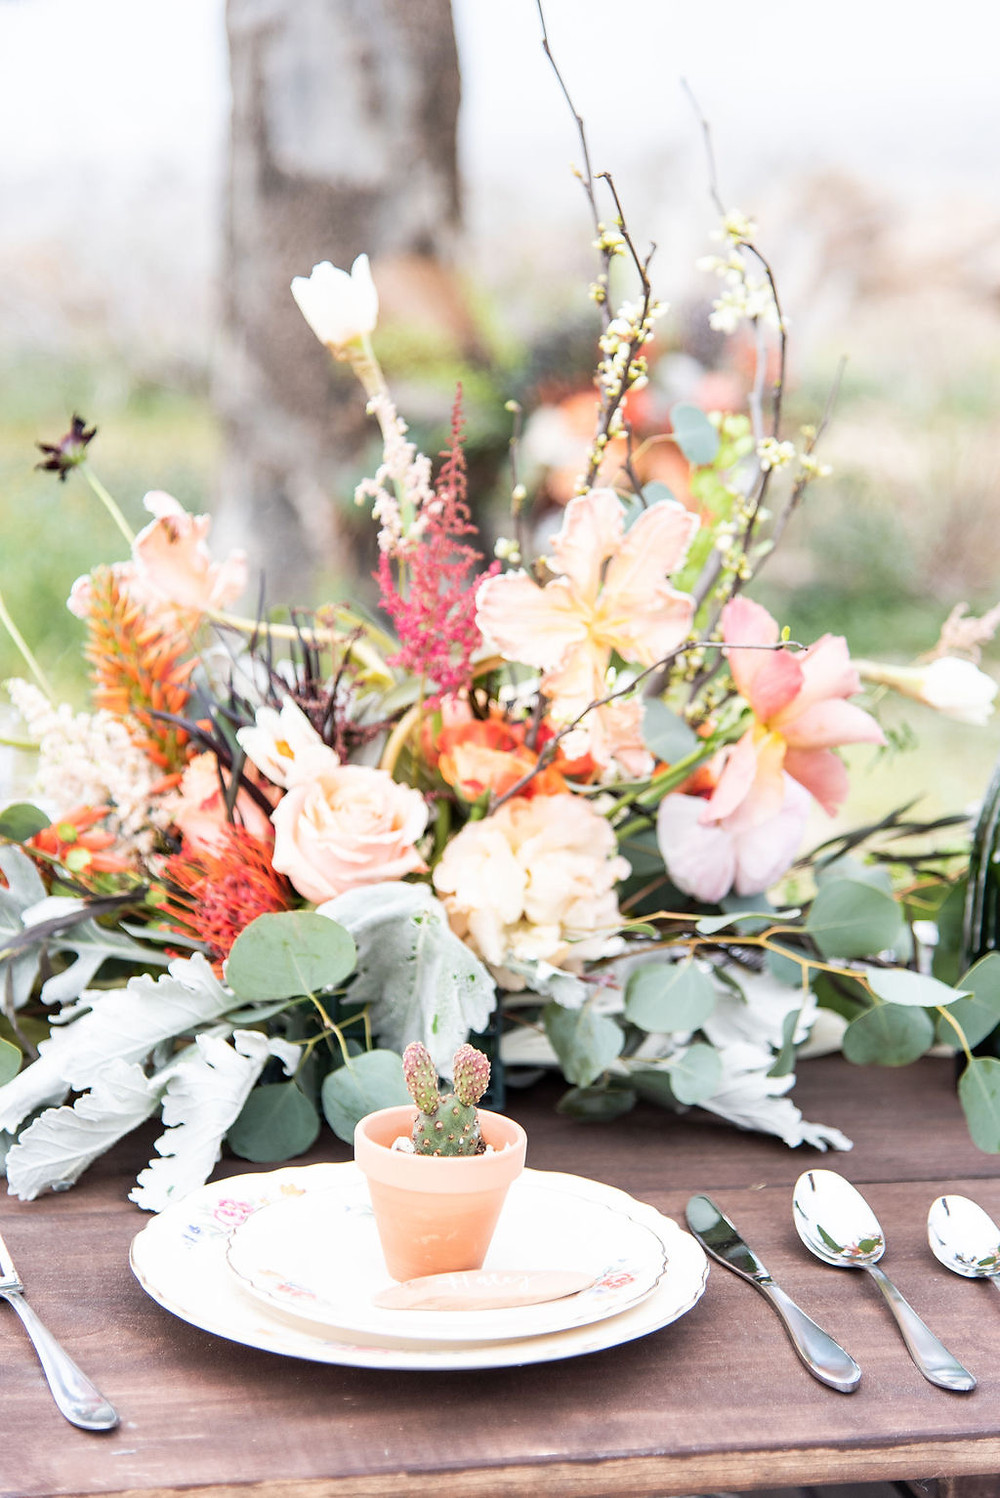 Beautiful rustic coarl colored floral arrangement on a desert tablescape.